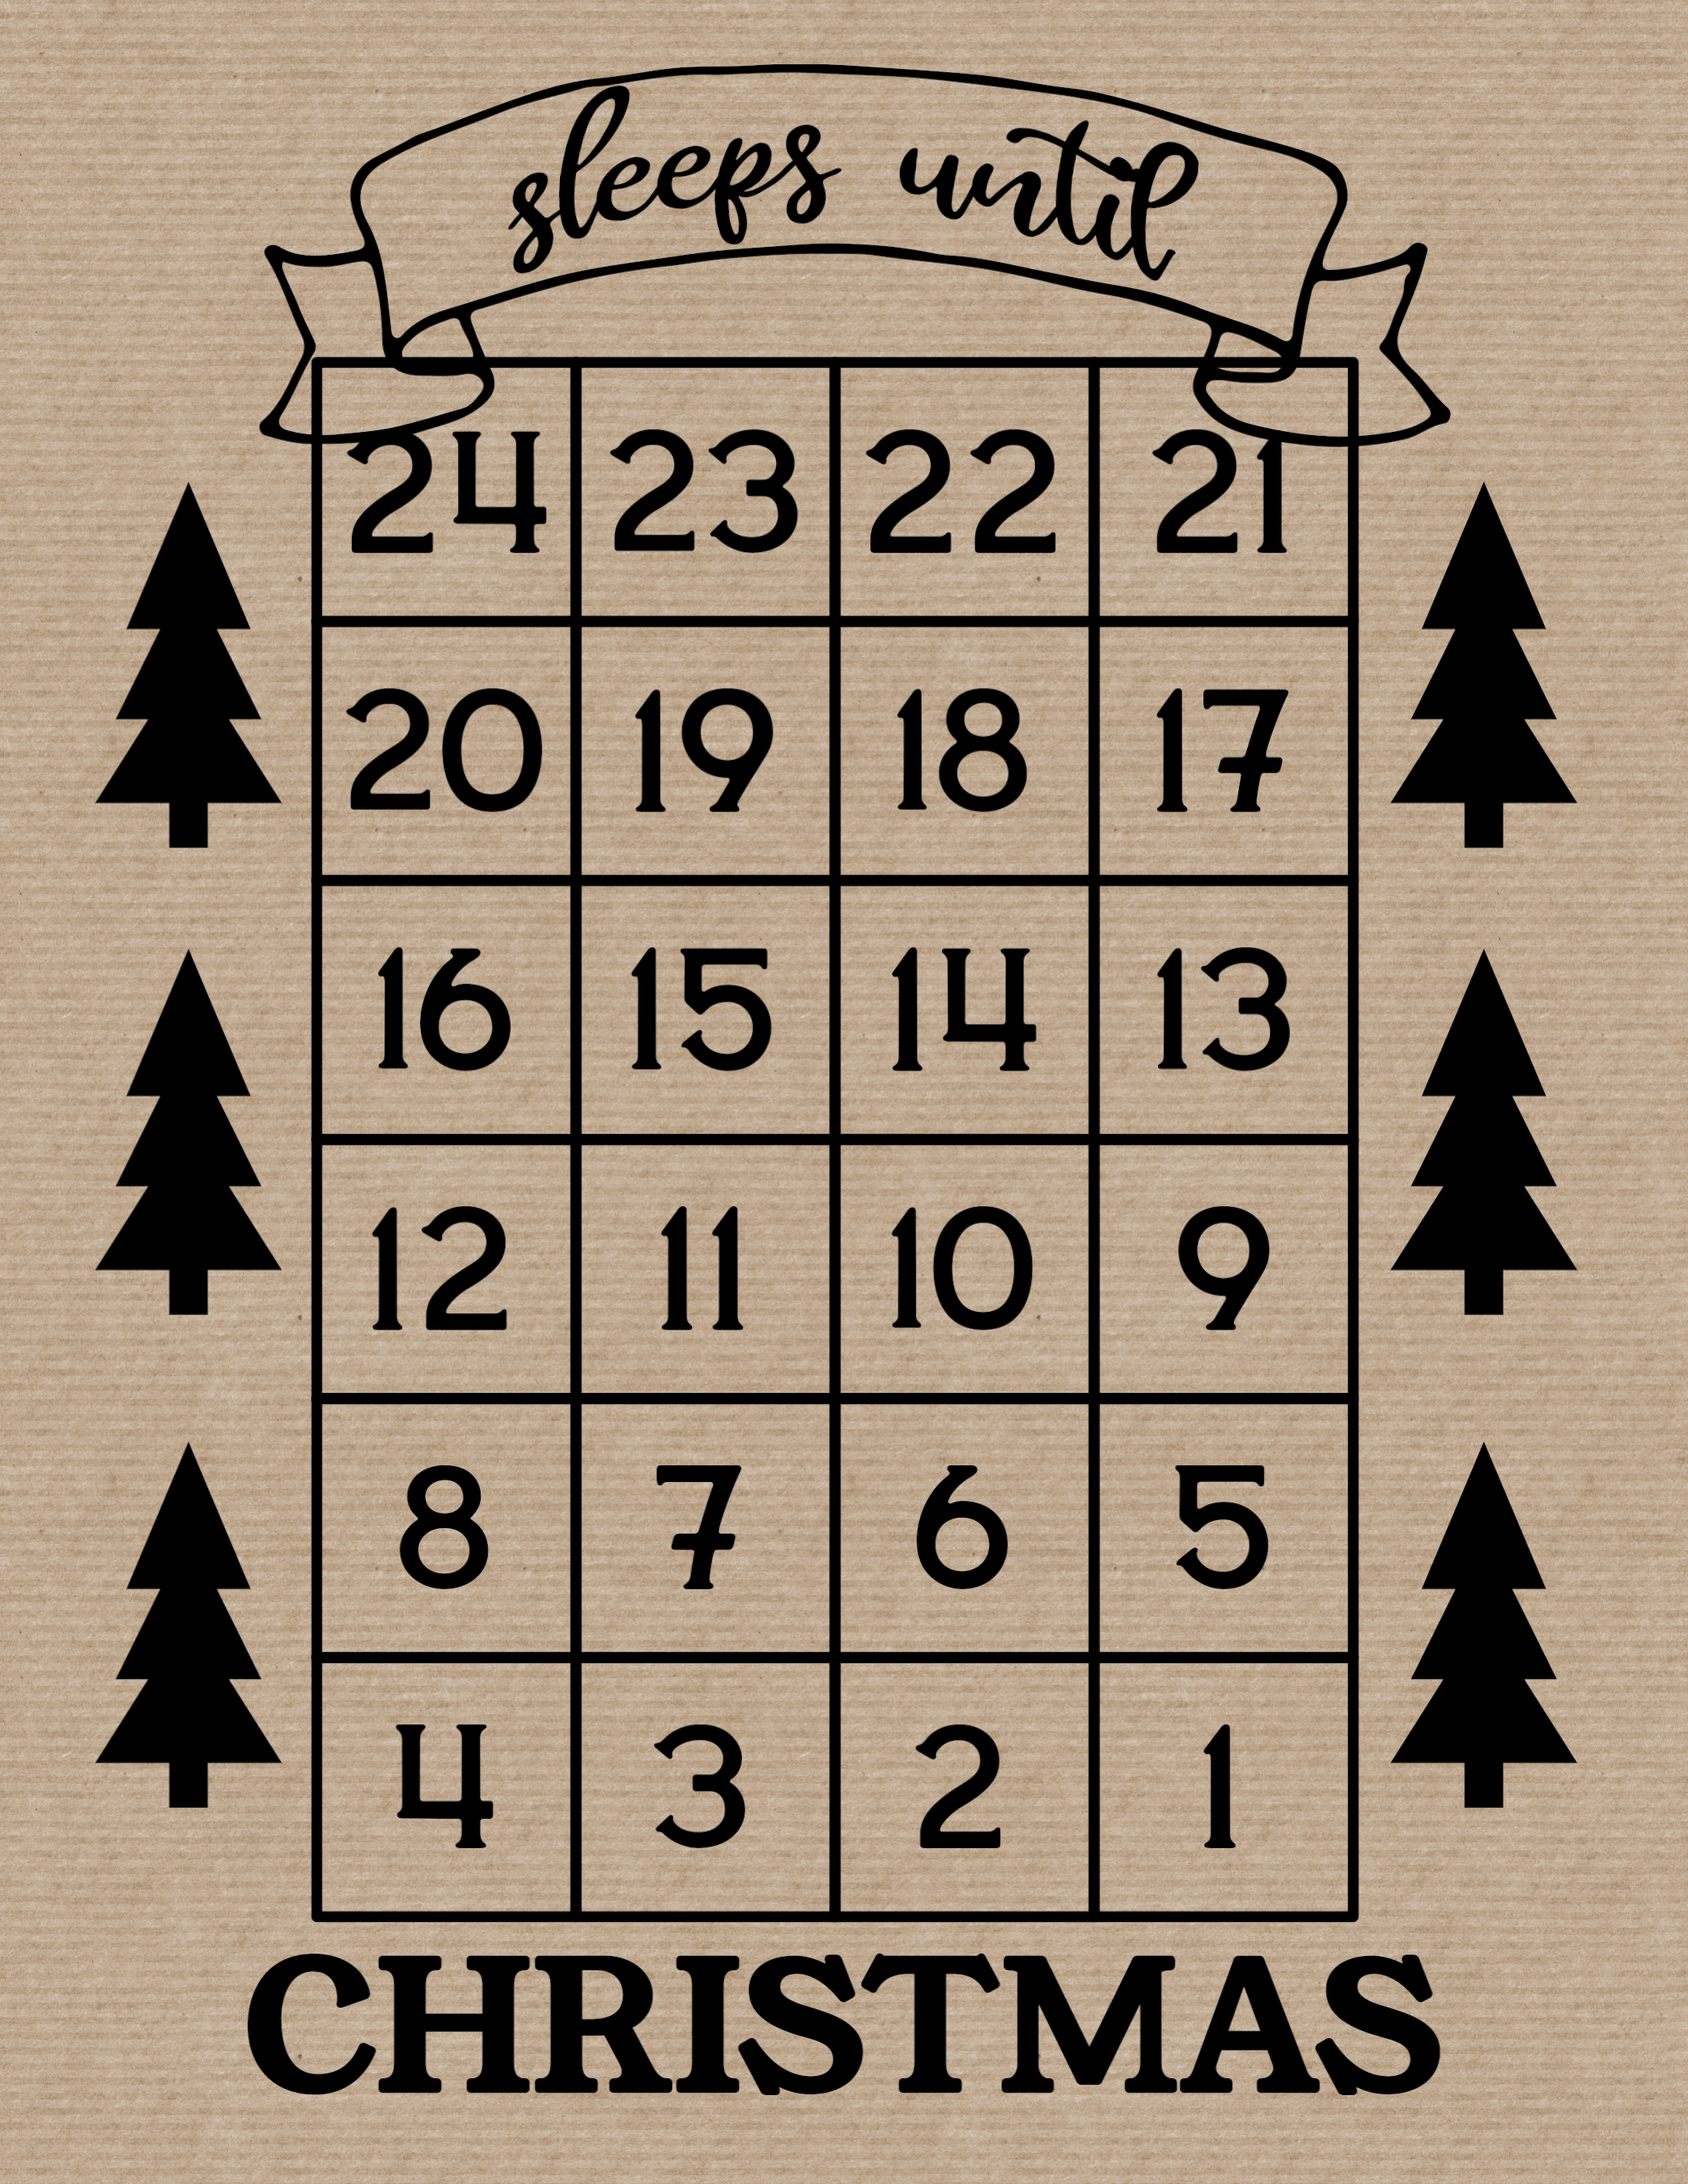 How Many Days Until Christmas Free Printable. Christmas countdown advent calendar sign with trees.